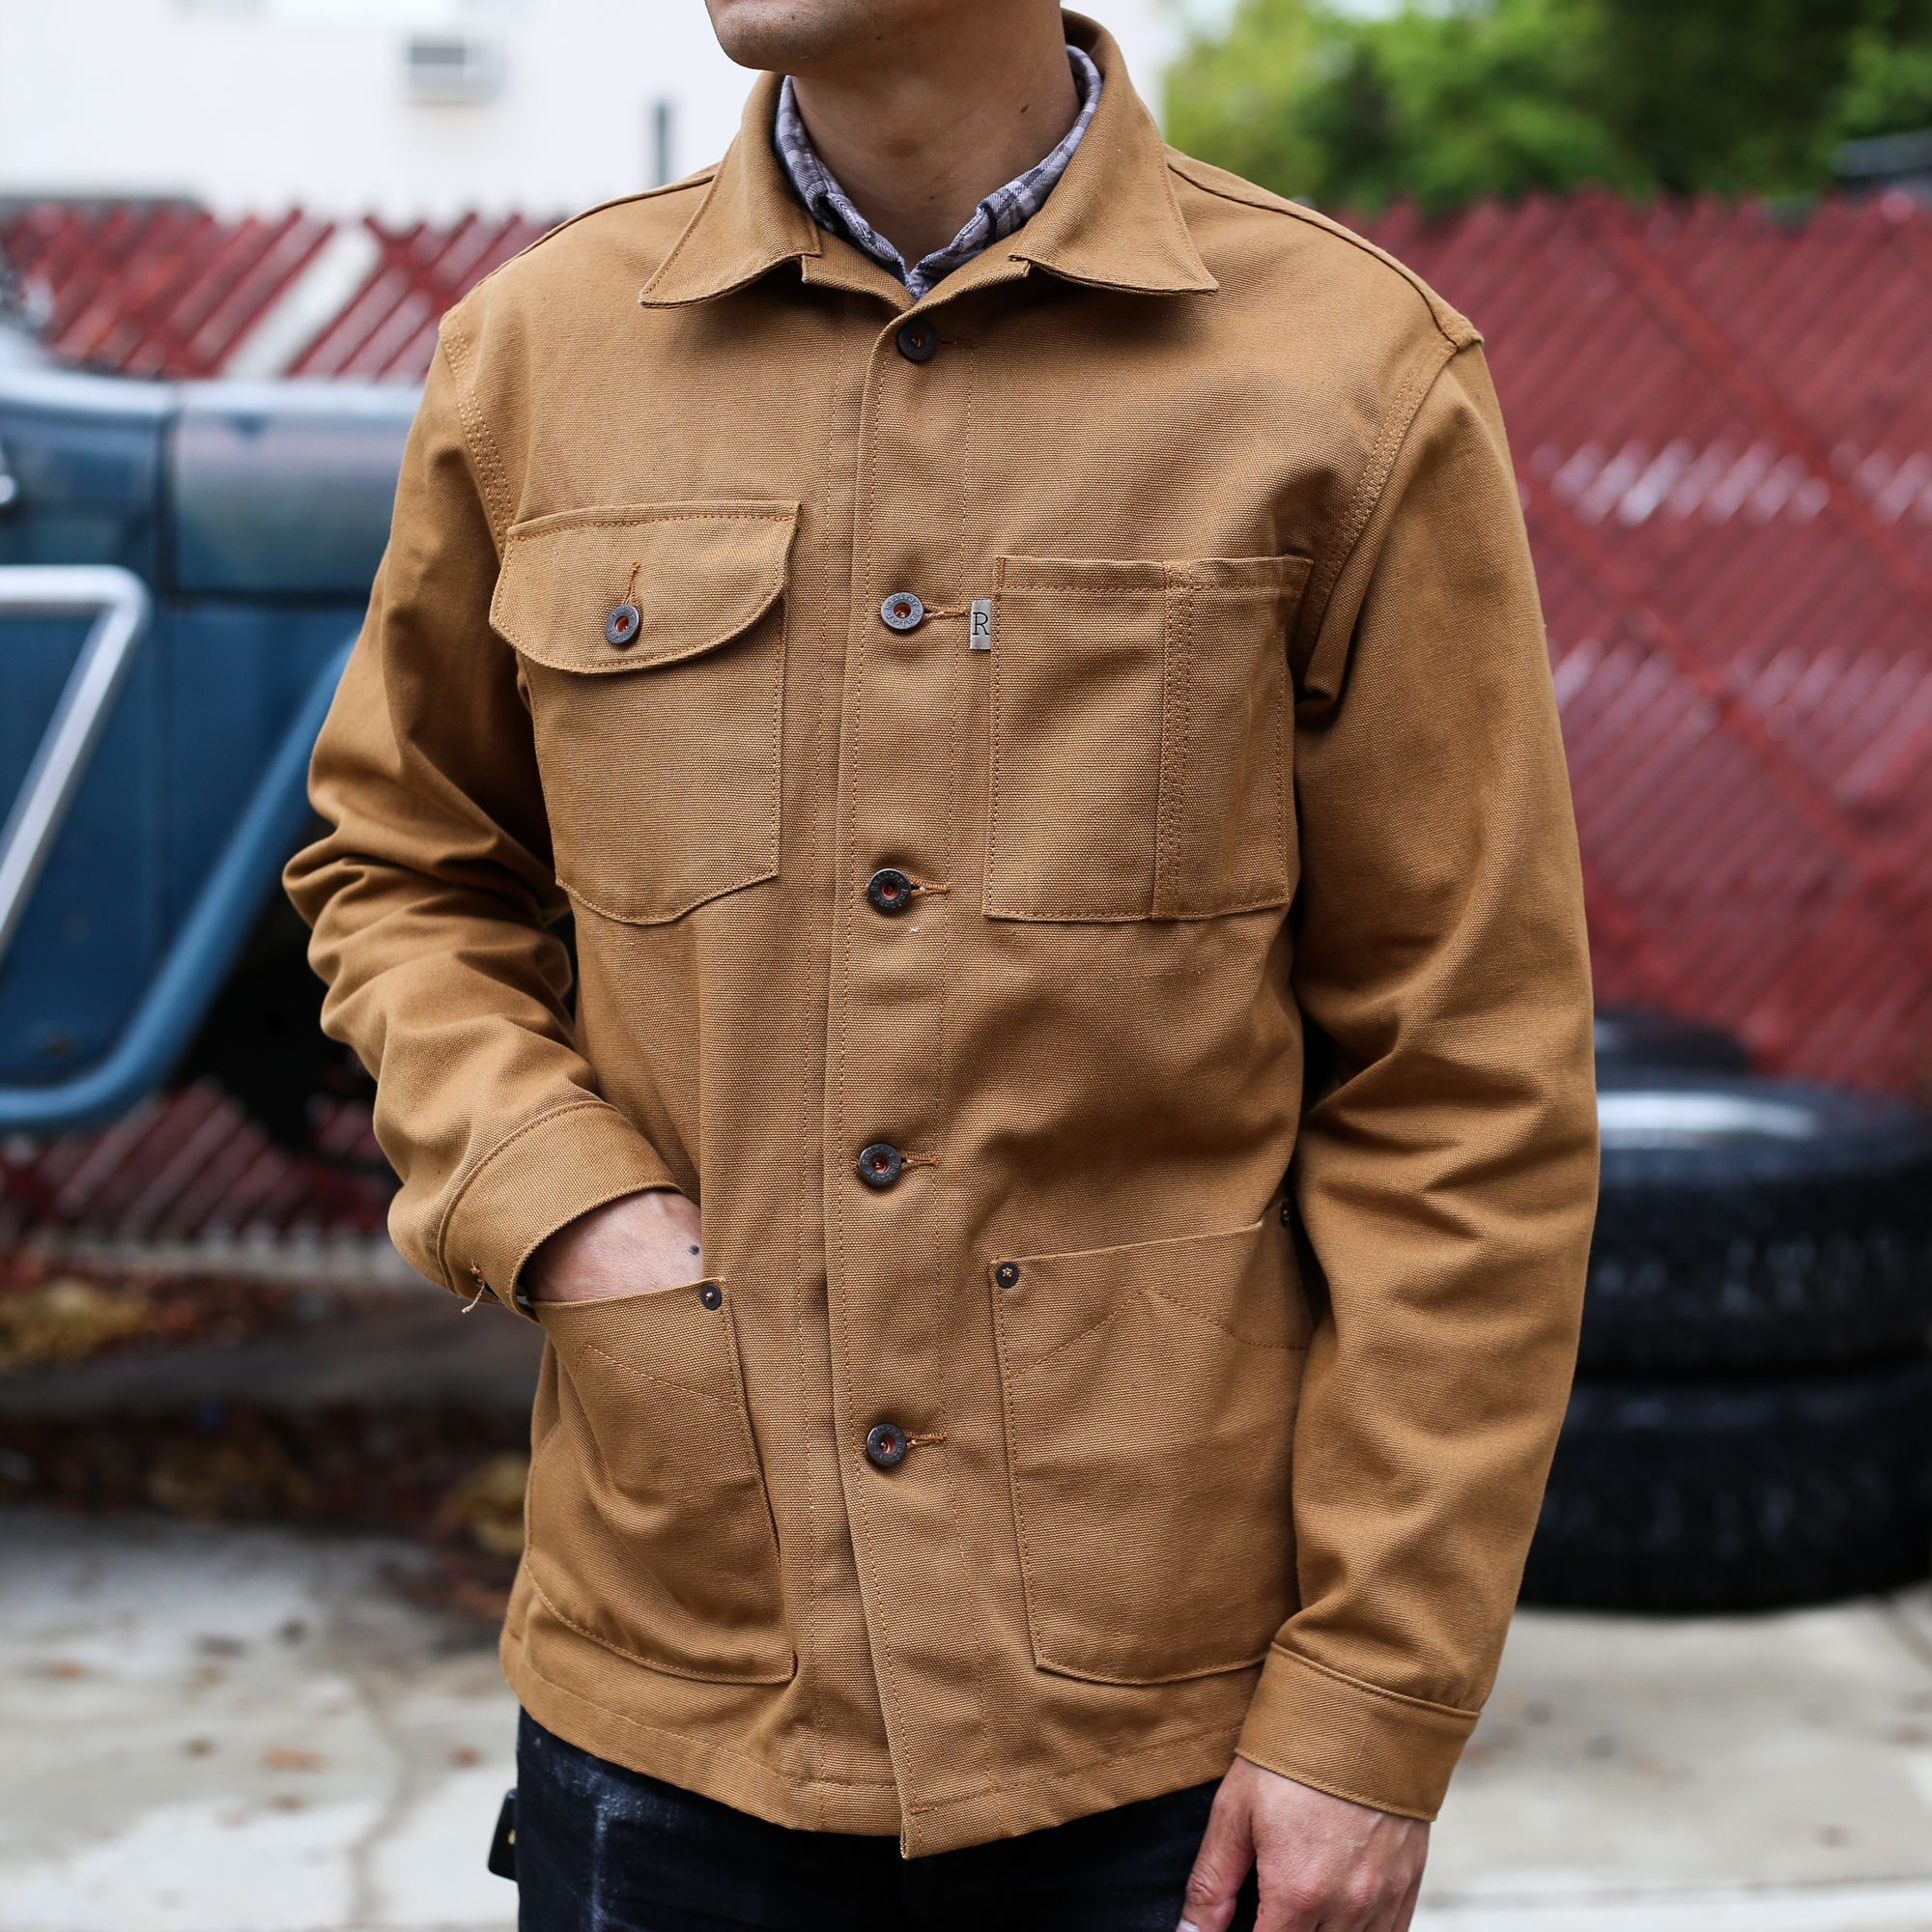 5f22489e The Railcar Canvas Chore Coat is the ultimate Made-in-USA jacket. These